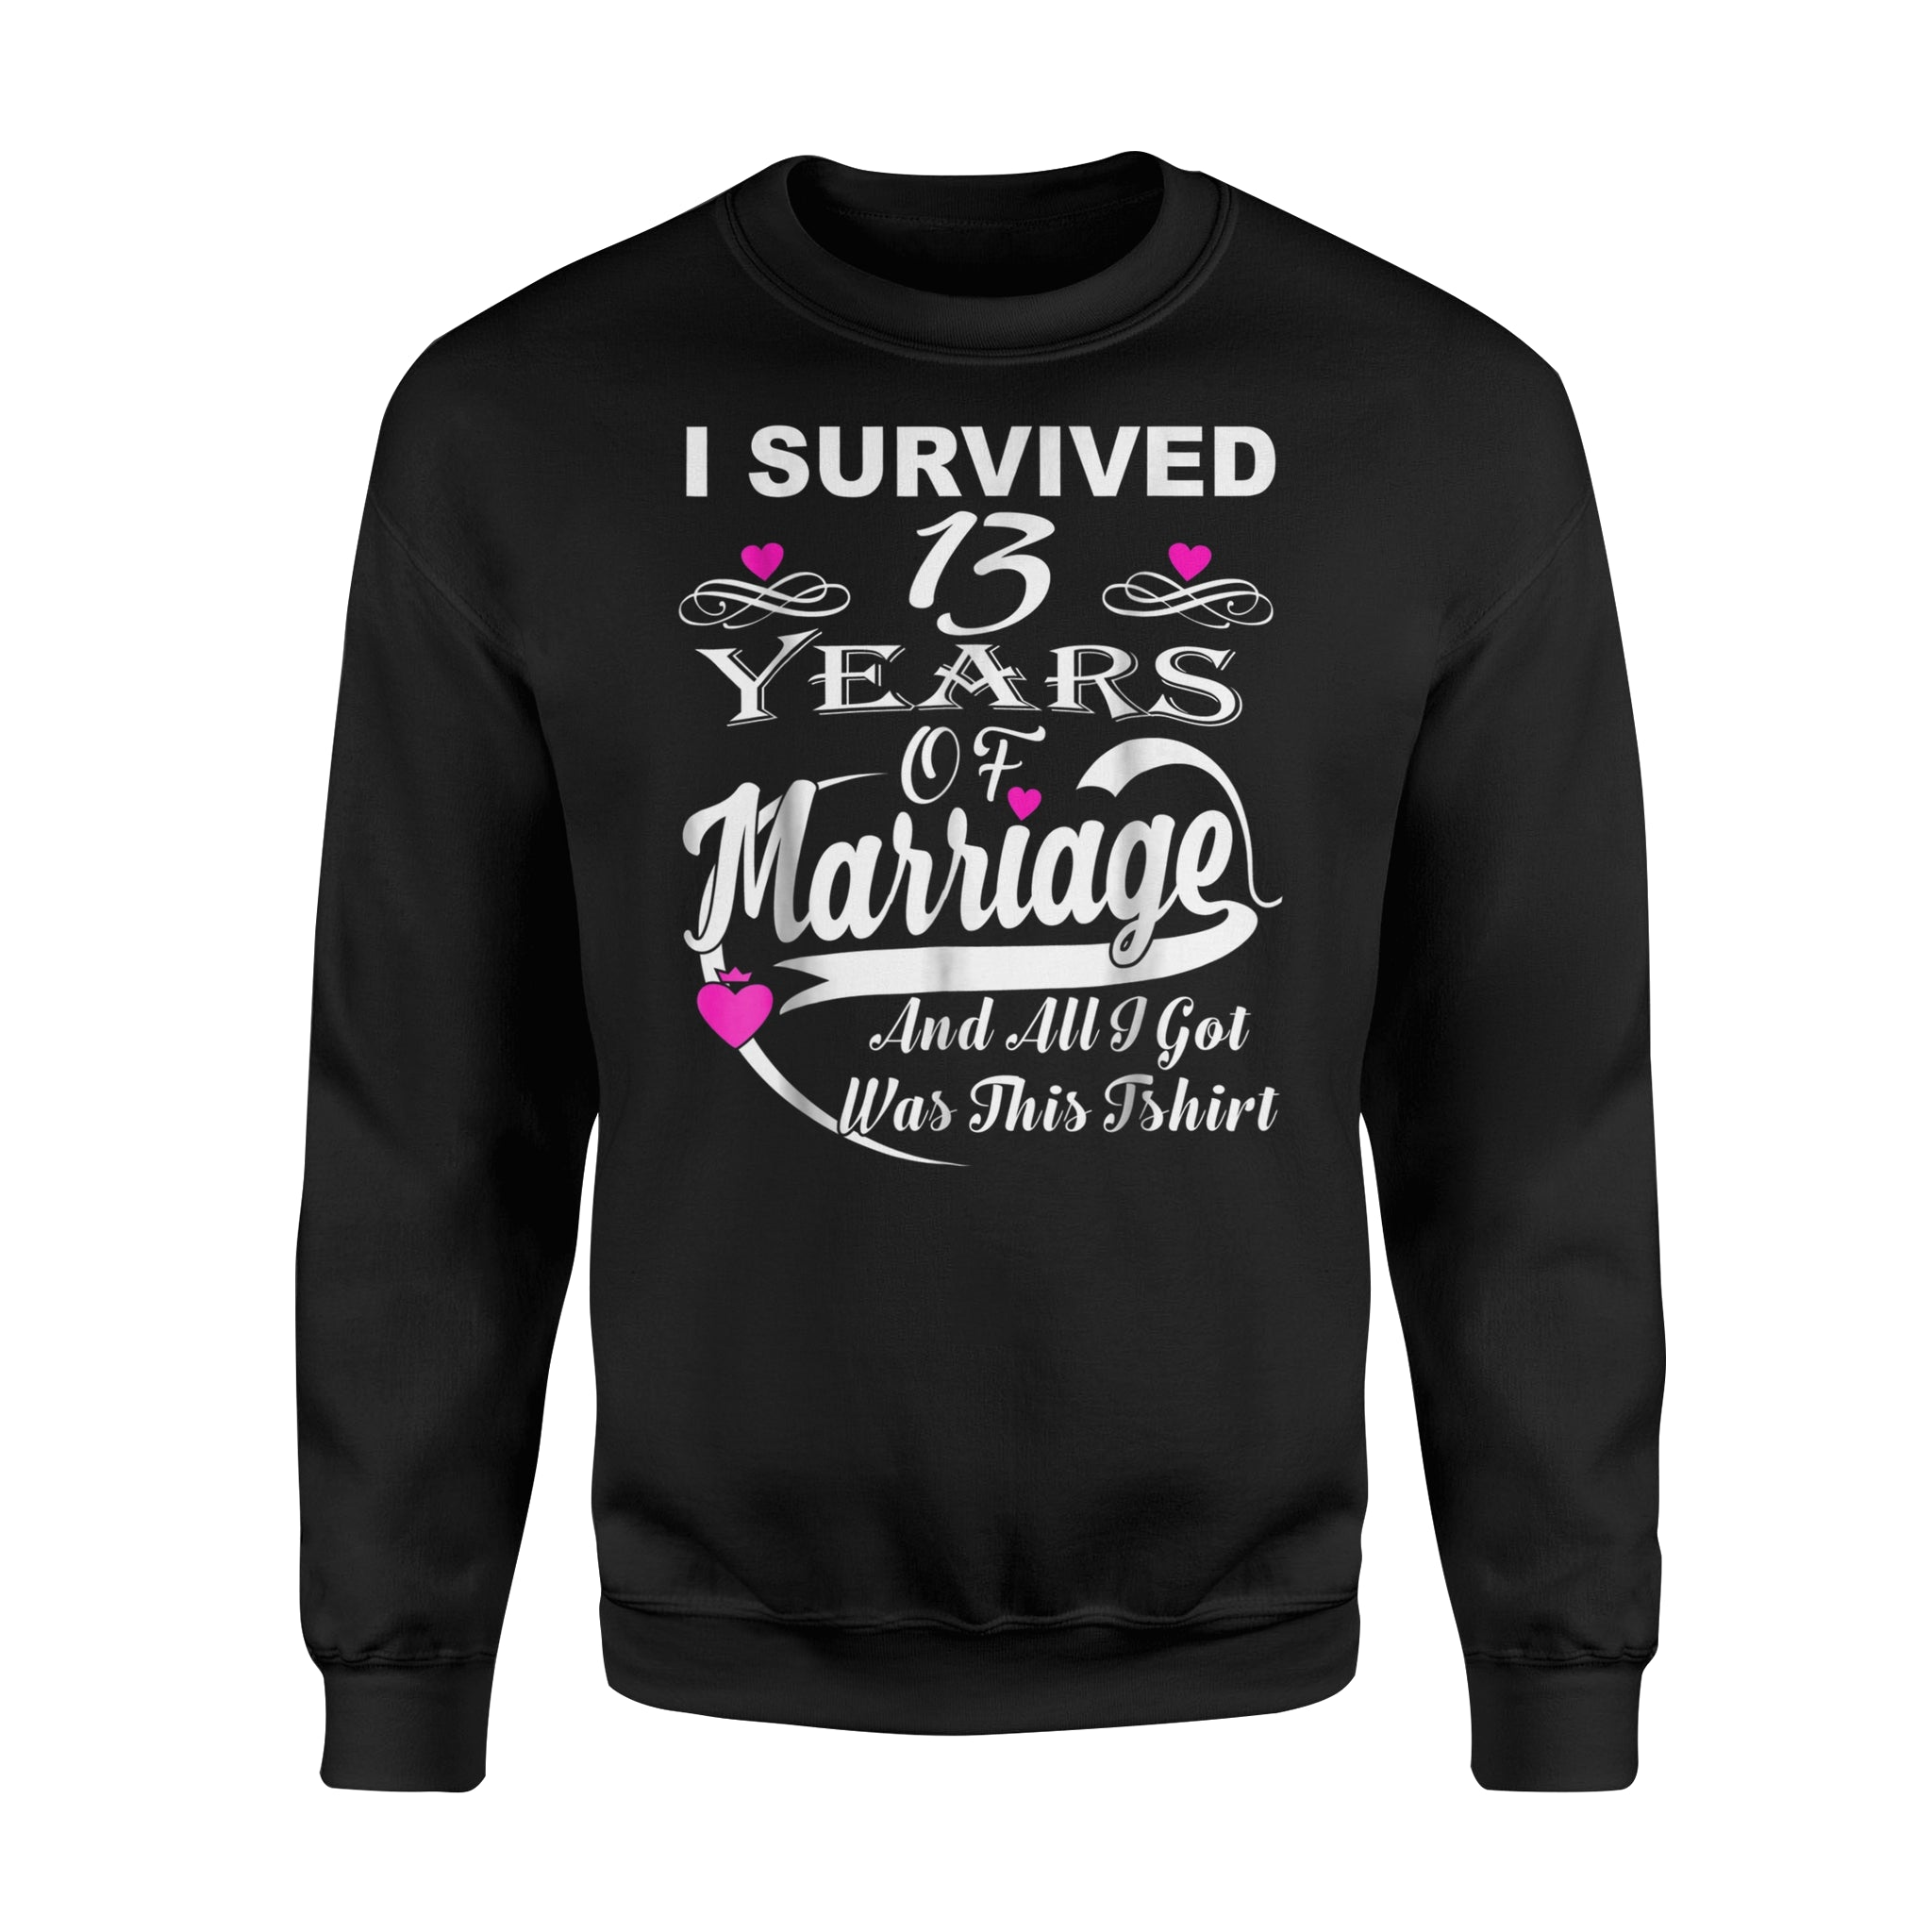 13th Wedding Anniversary Gift For Her: 13th Wedding Anniversary Gift For Women Men Sweatshirt